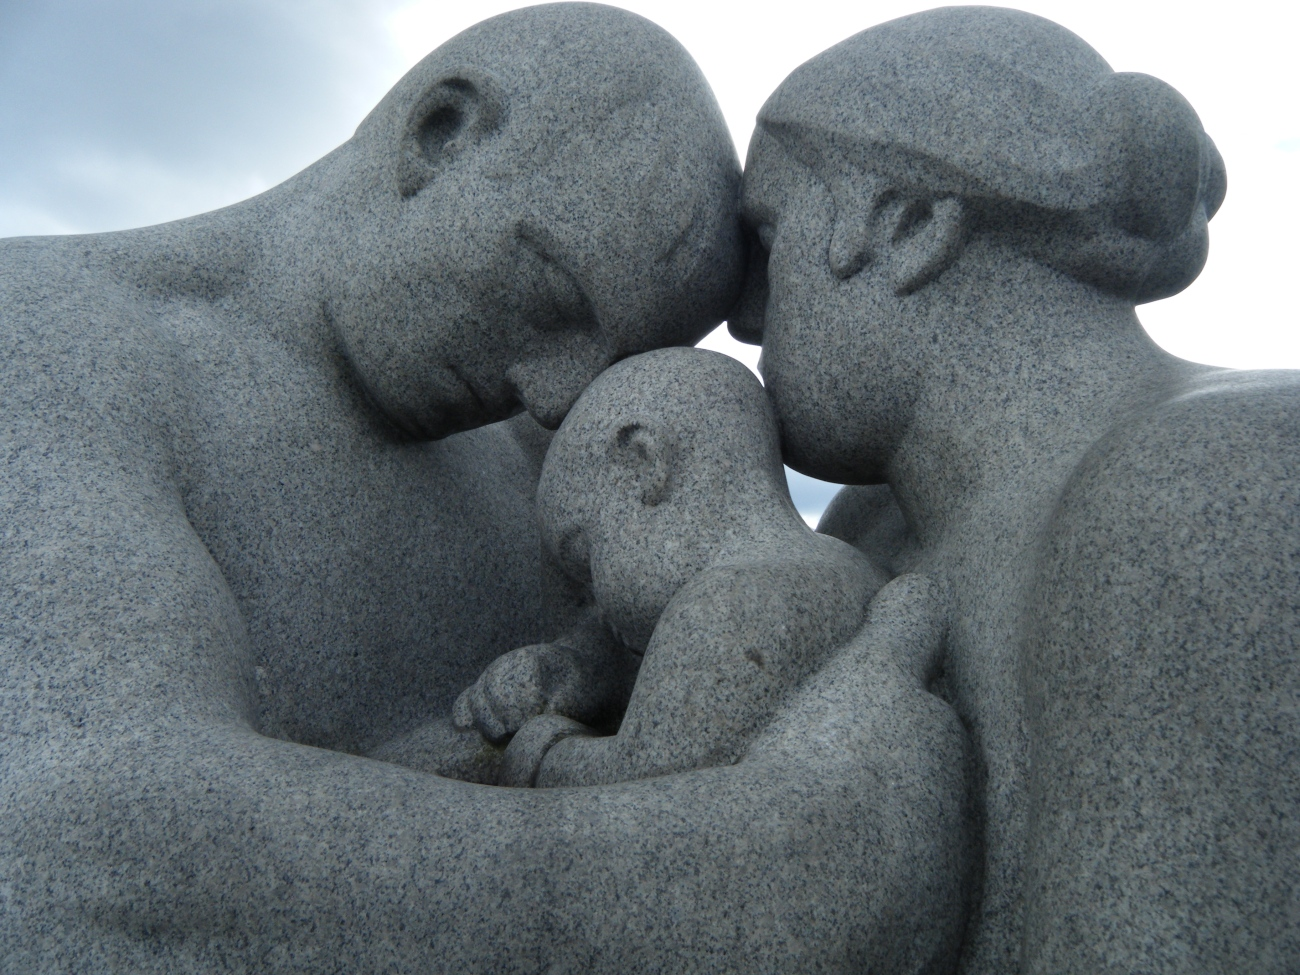 A statue of family in Oslo, Norway